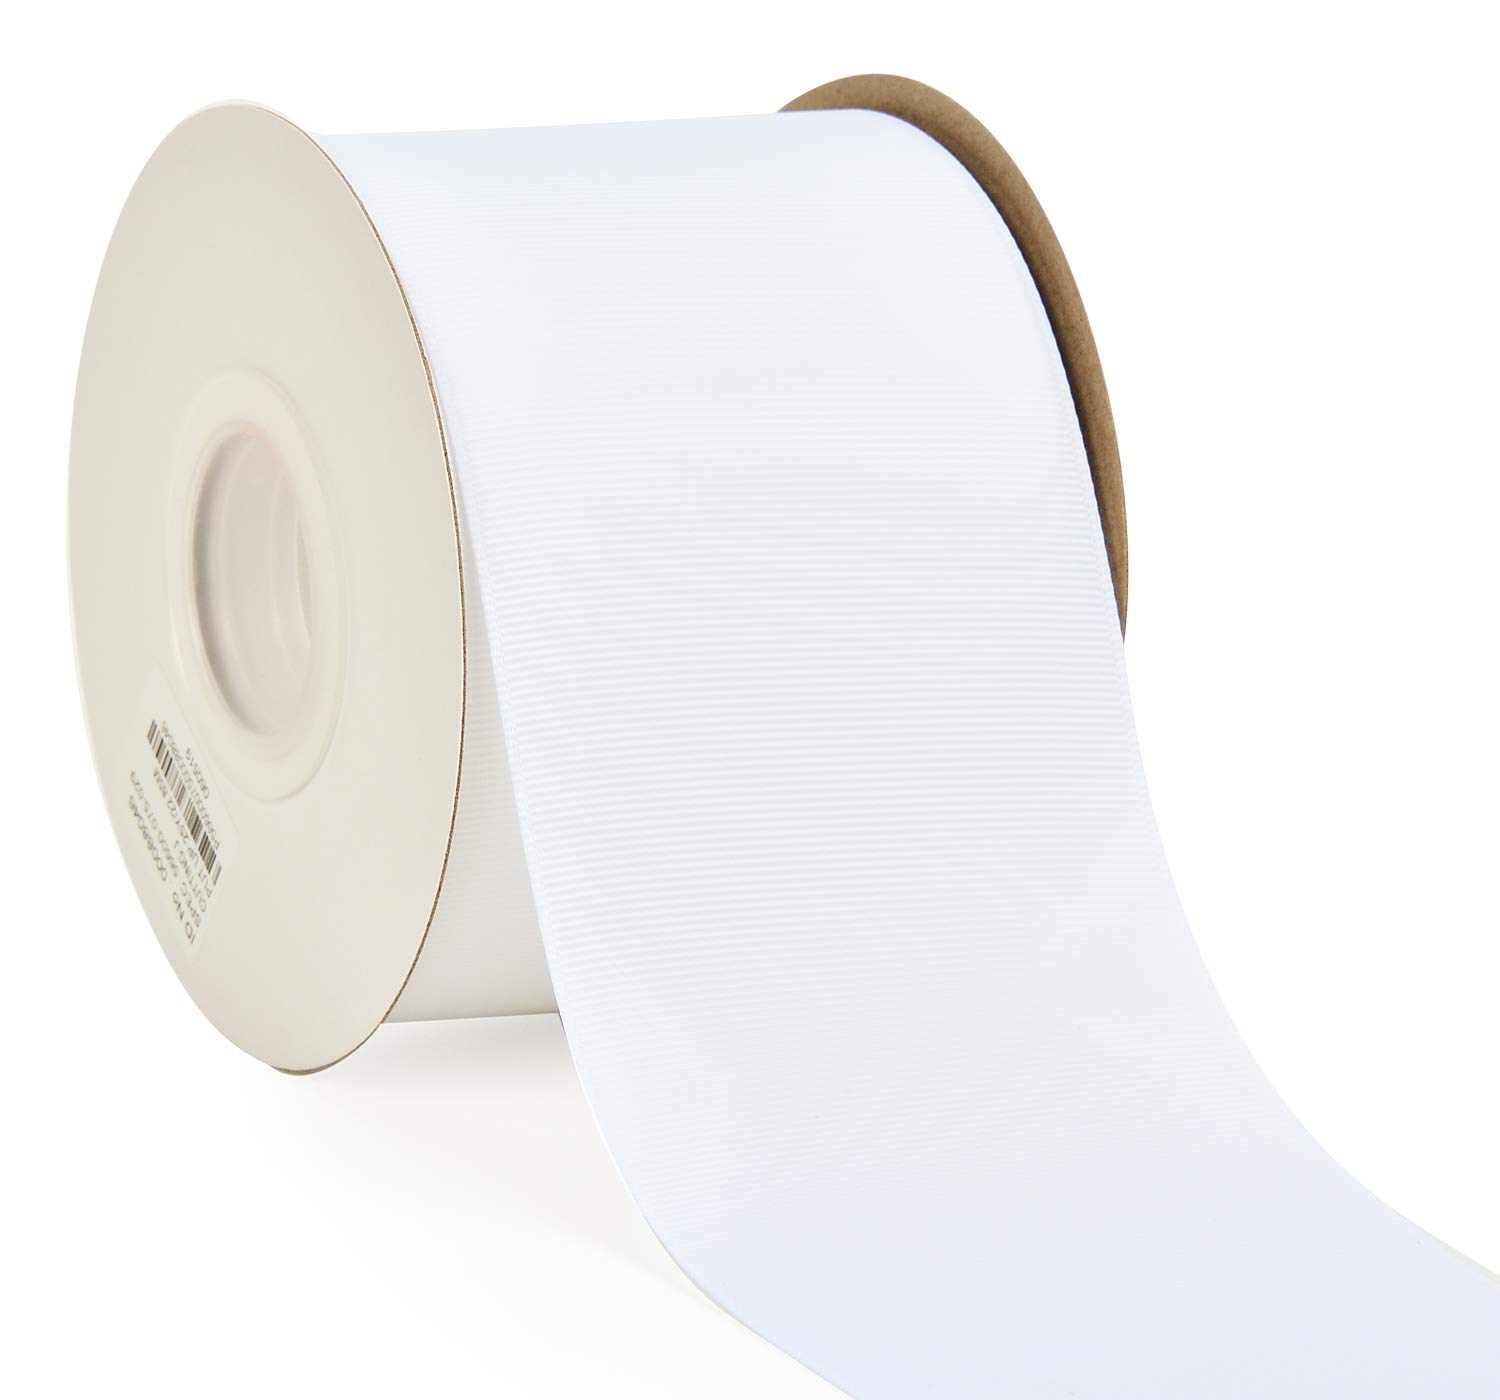 YAMA 3 inch Solid Grosgrain Ribbon Roll - 25 Yards for Gift Wrapping Ribbons, White